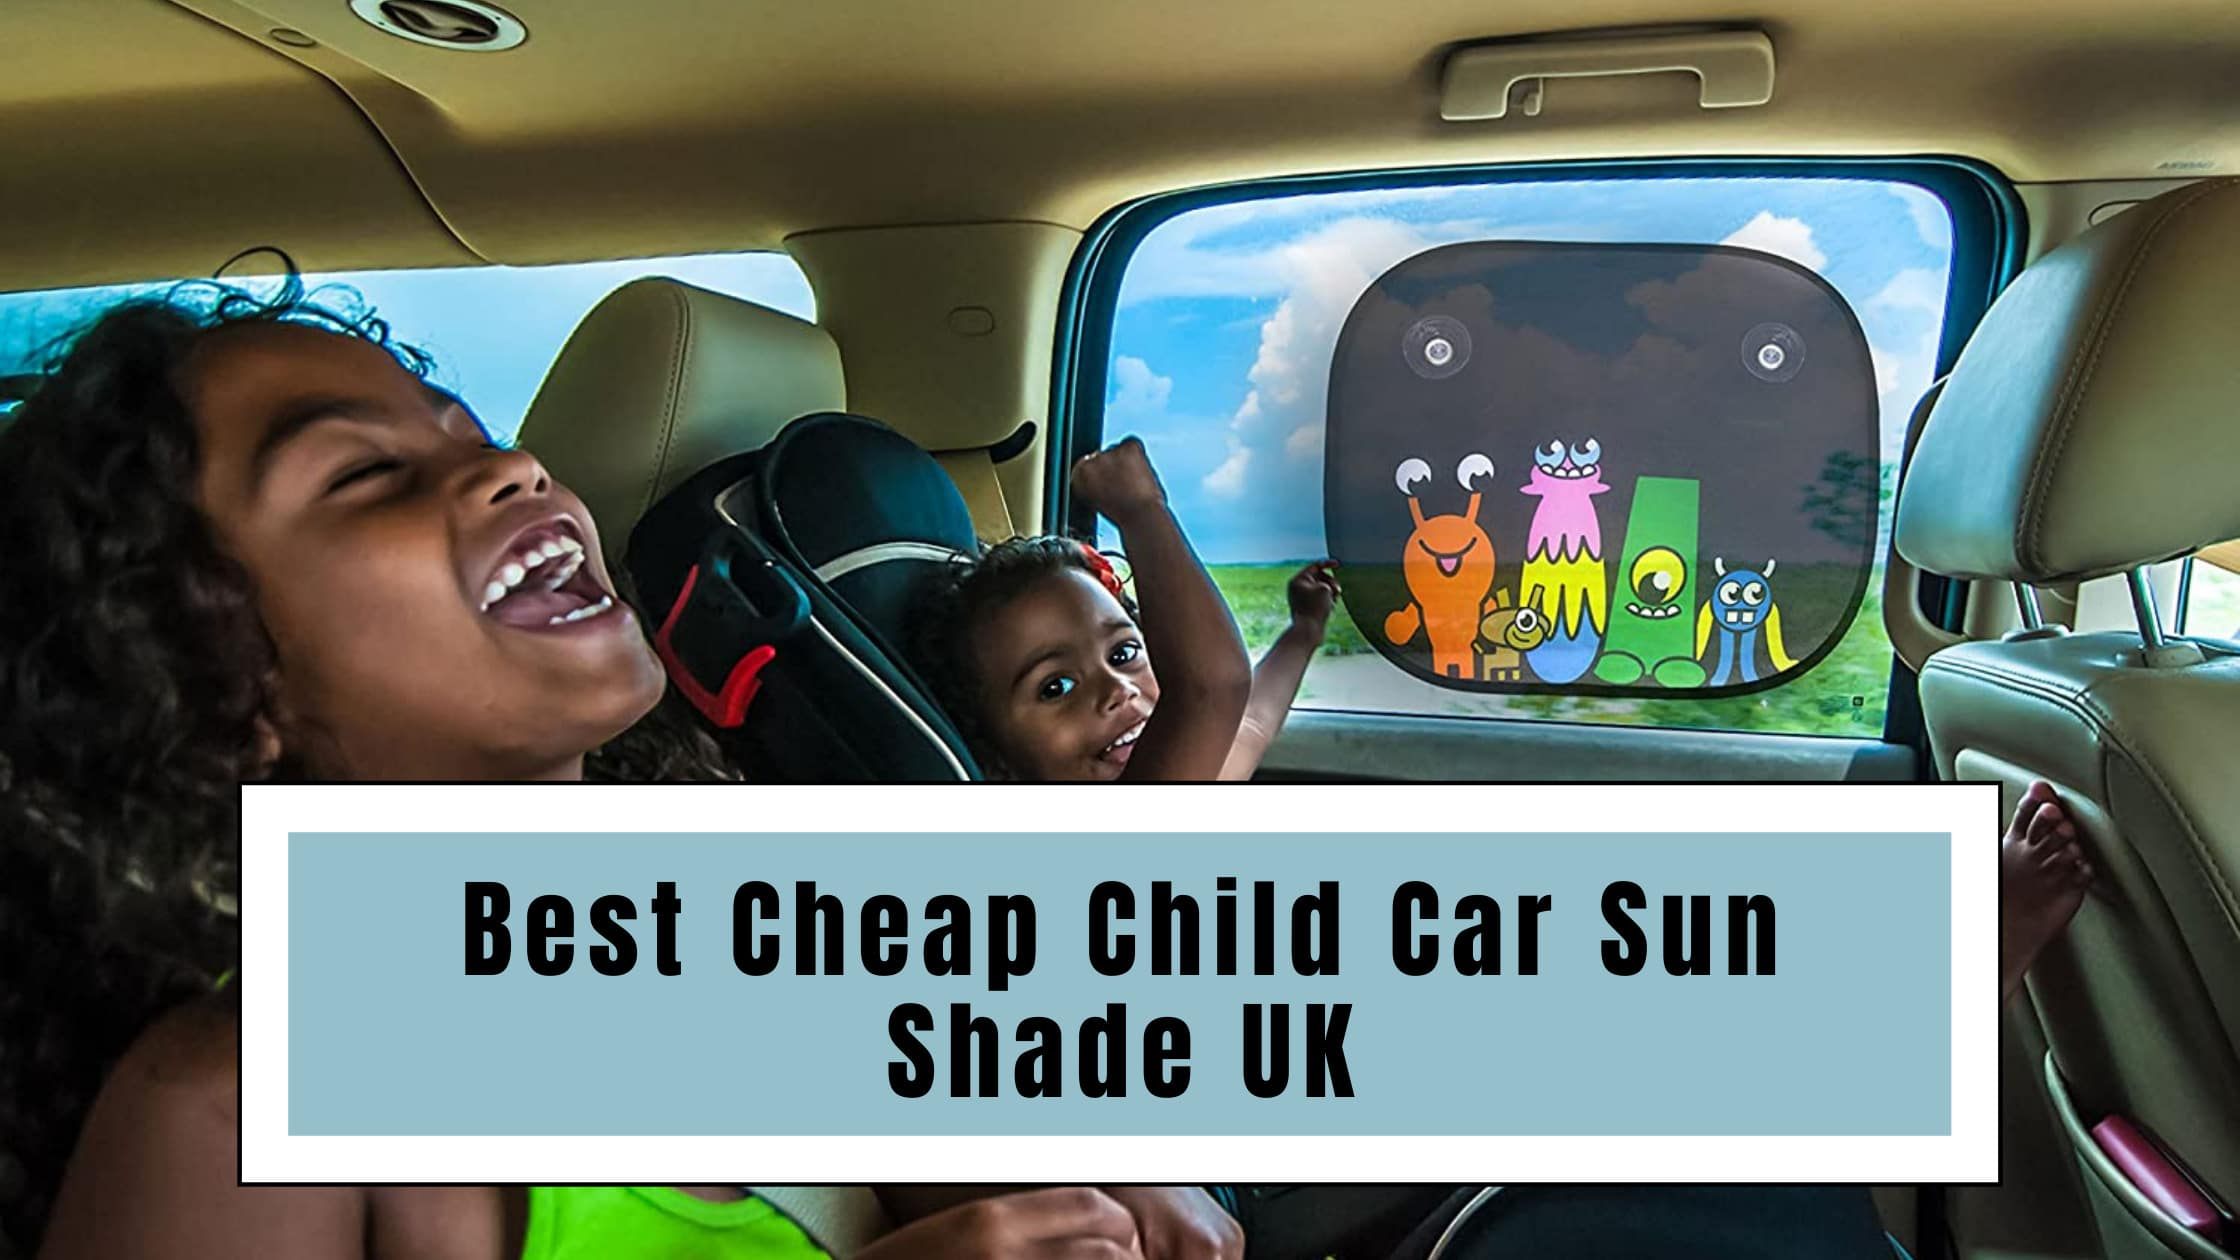 Best Cheap Child Car Sun Shade UK